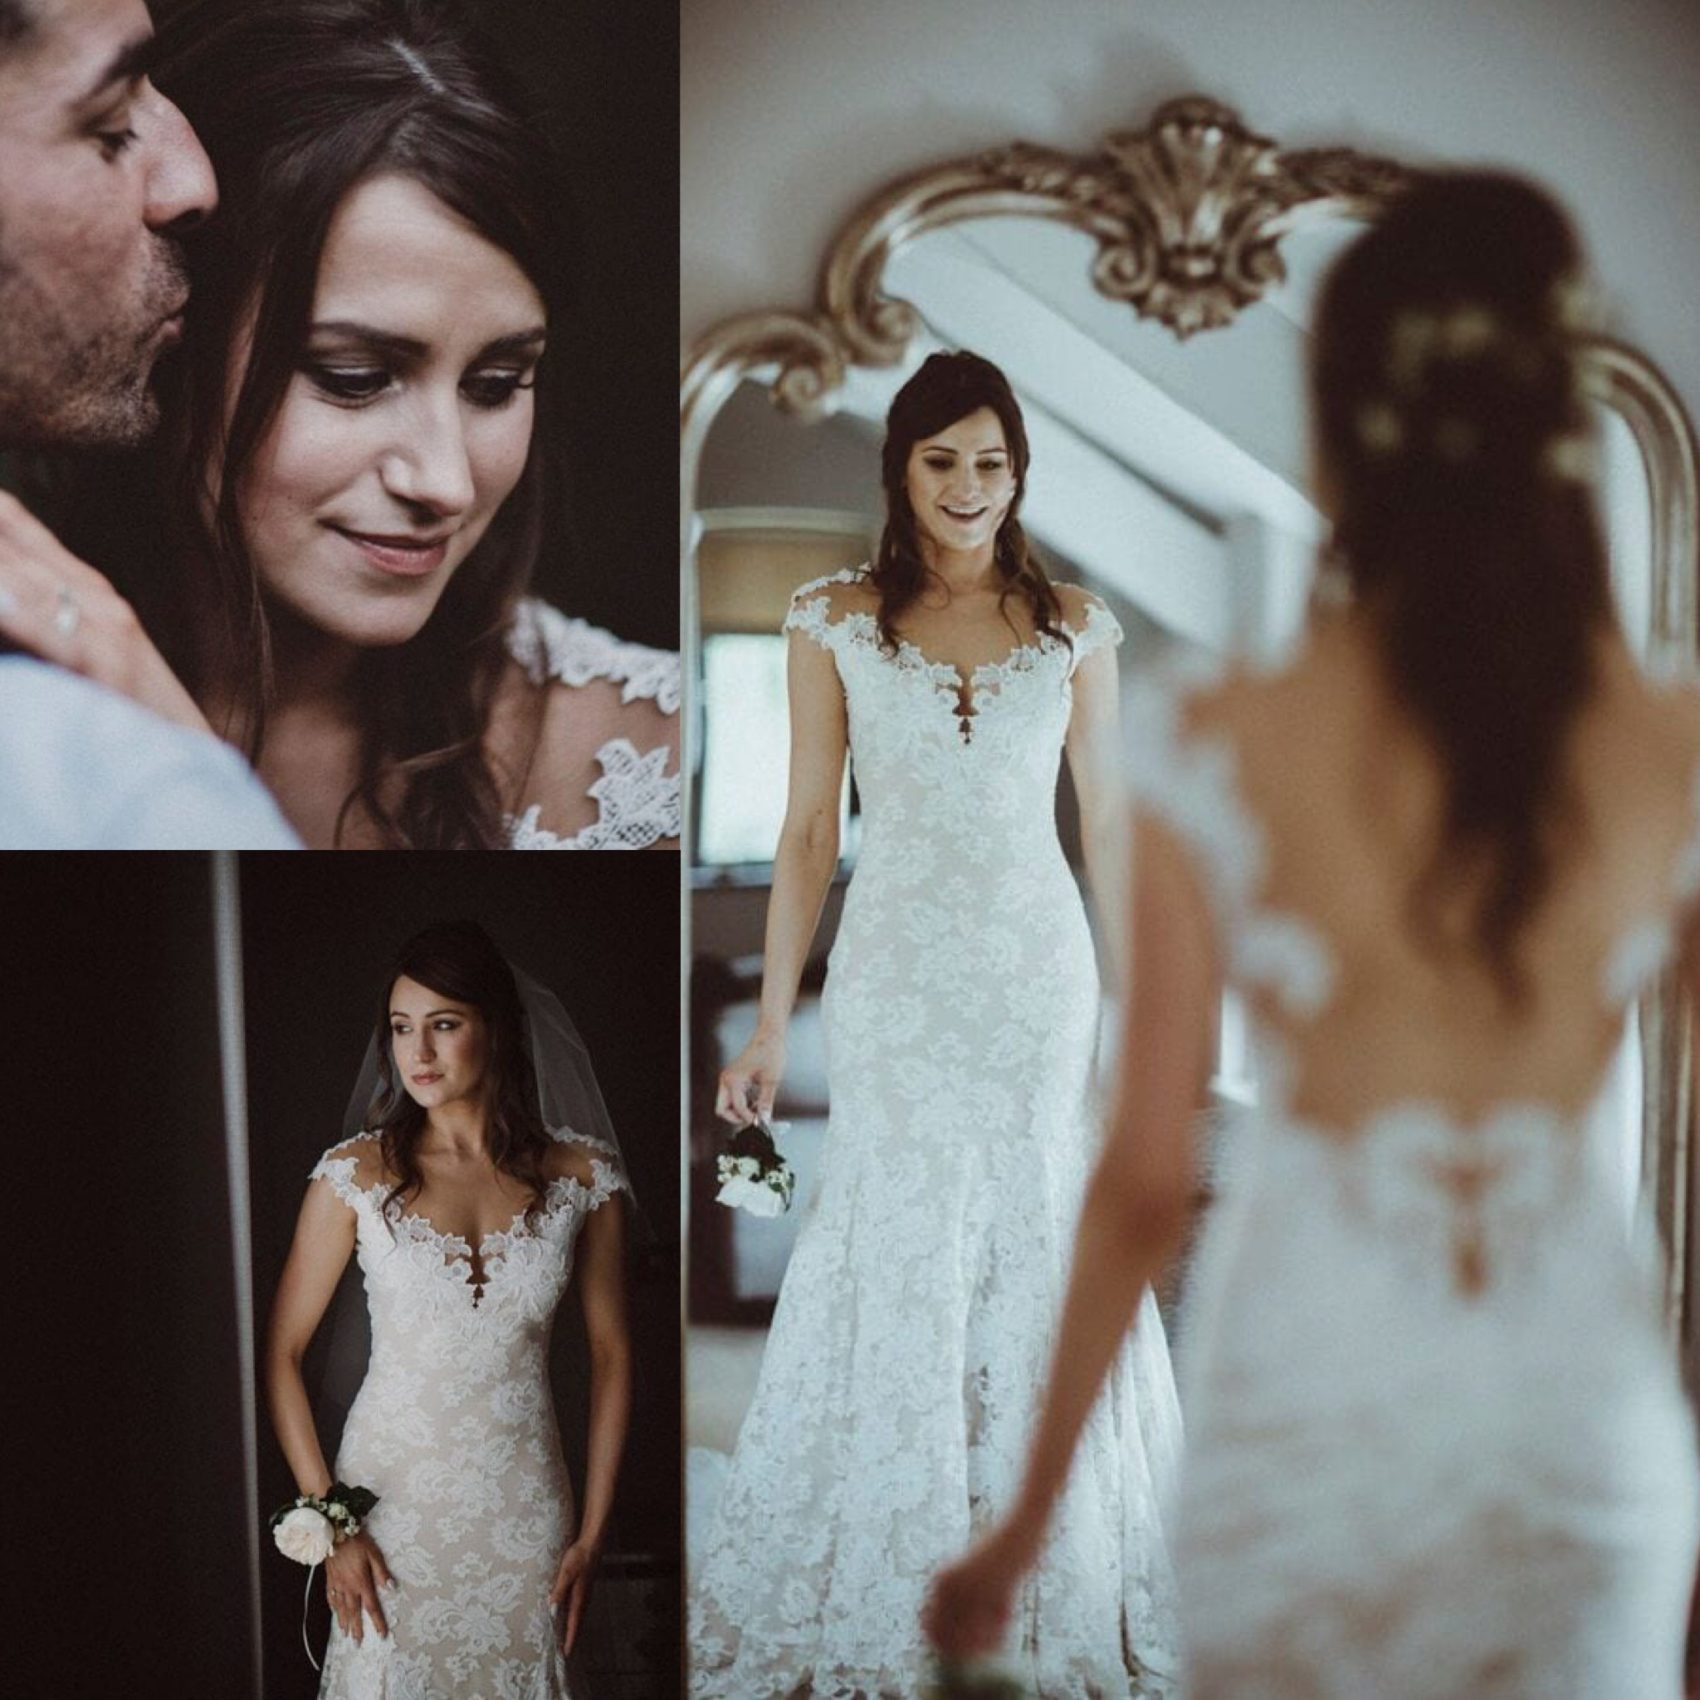 Details, beautiful, close ups, white dress, lace, low back, mirror, lighting, moody, wedding, ever after, lower grenofen, ben selway, couple, kiss